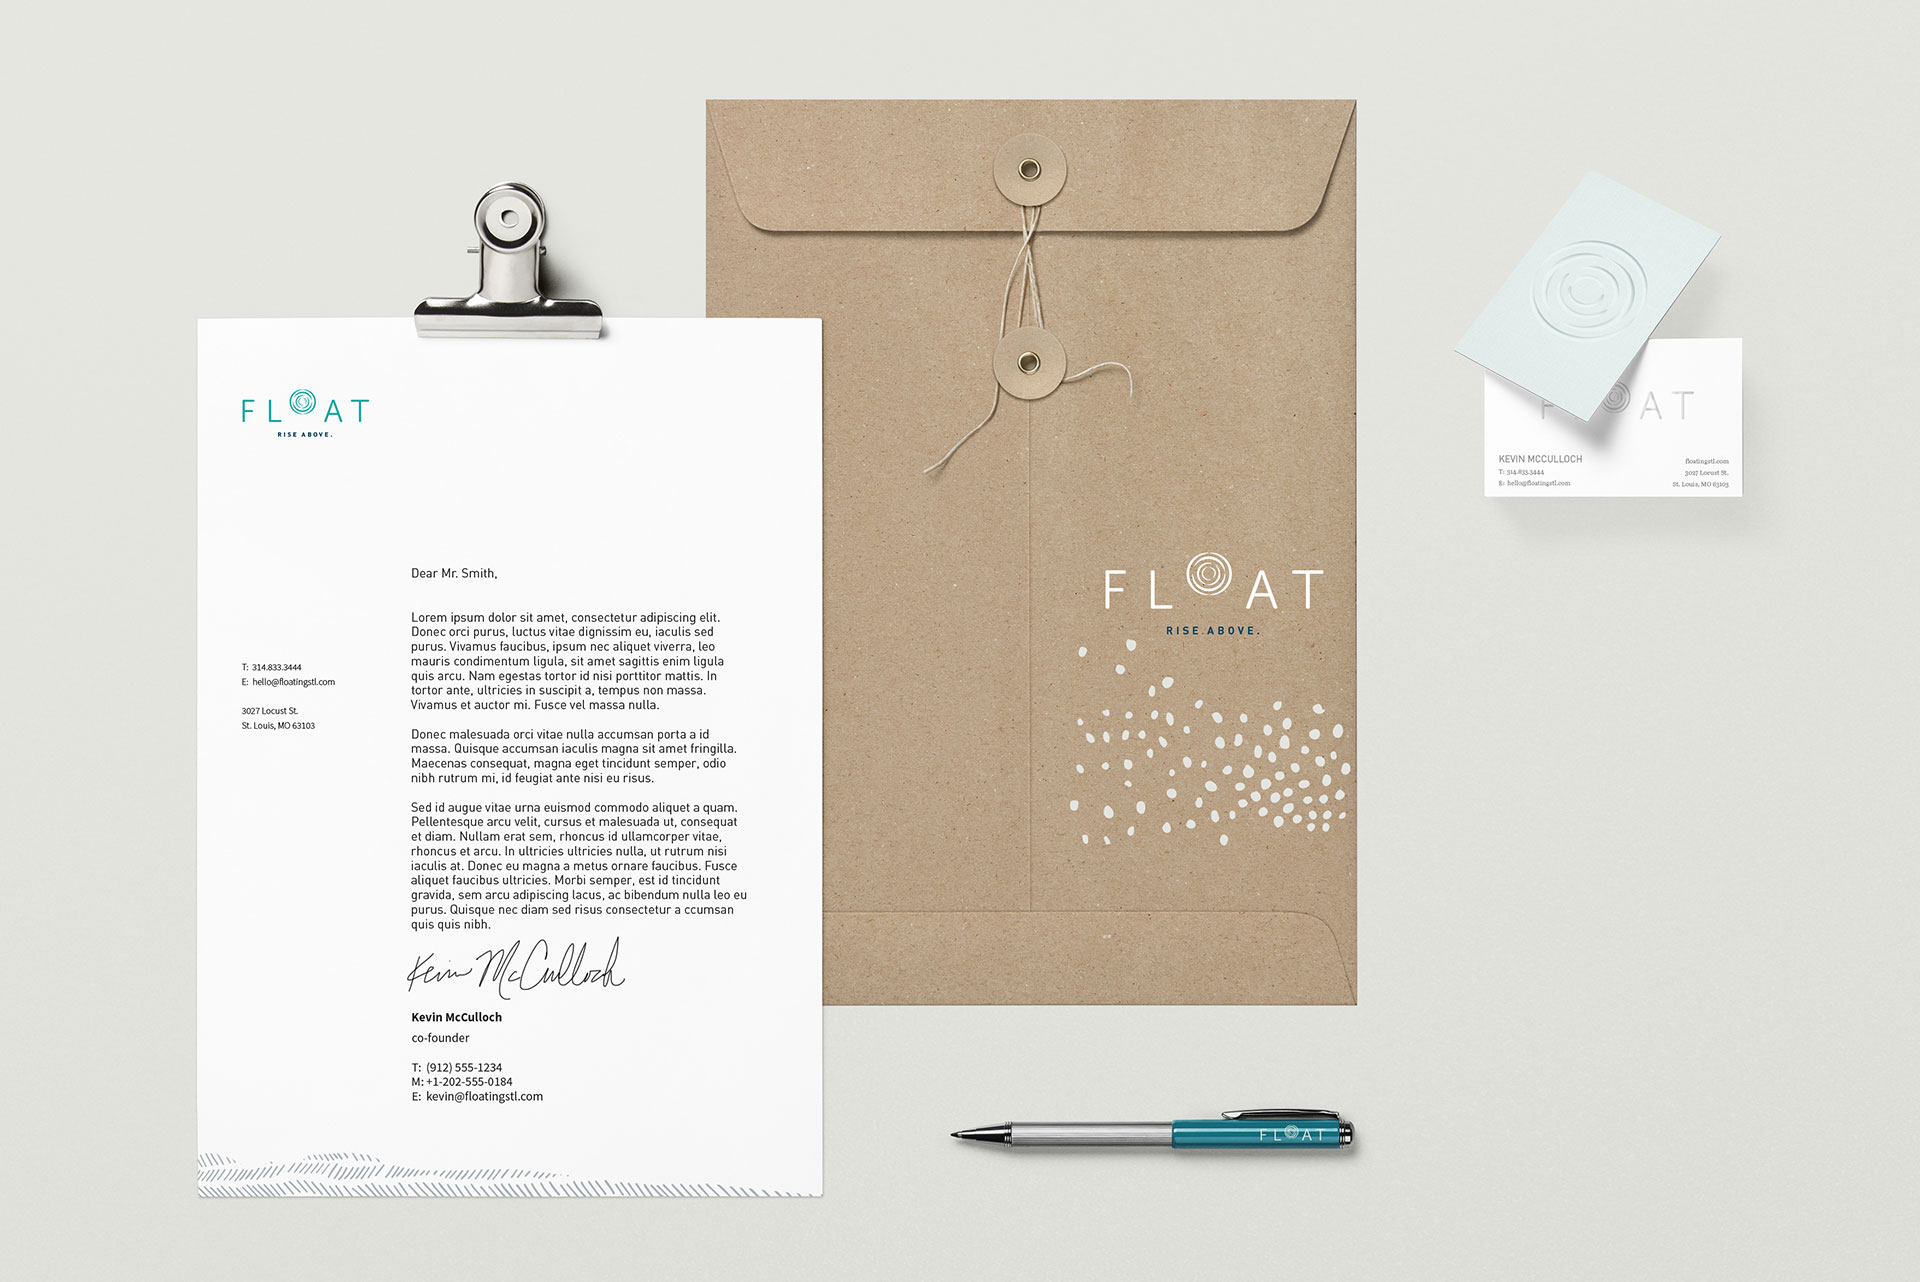 float-st-louis-branding-expression-collateral